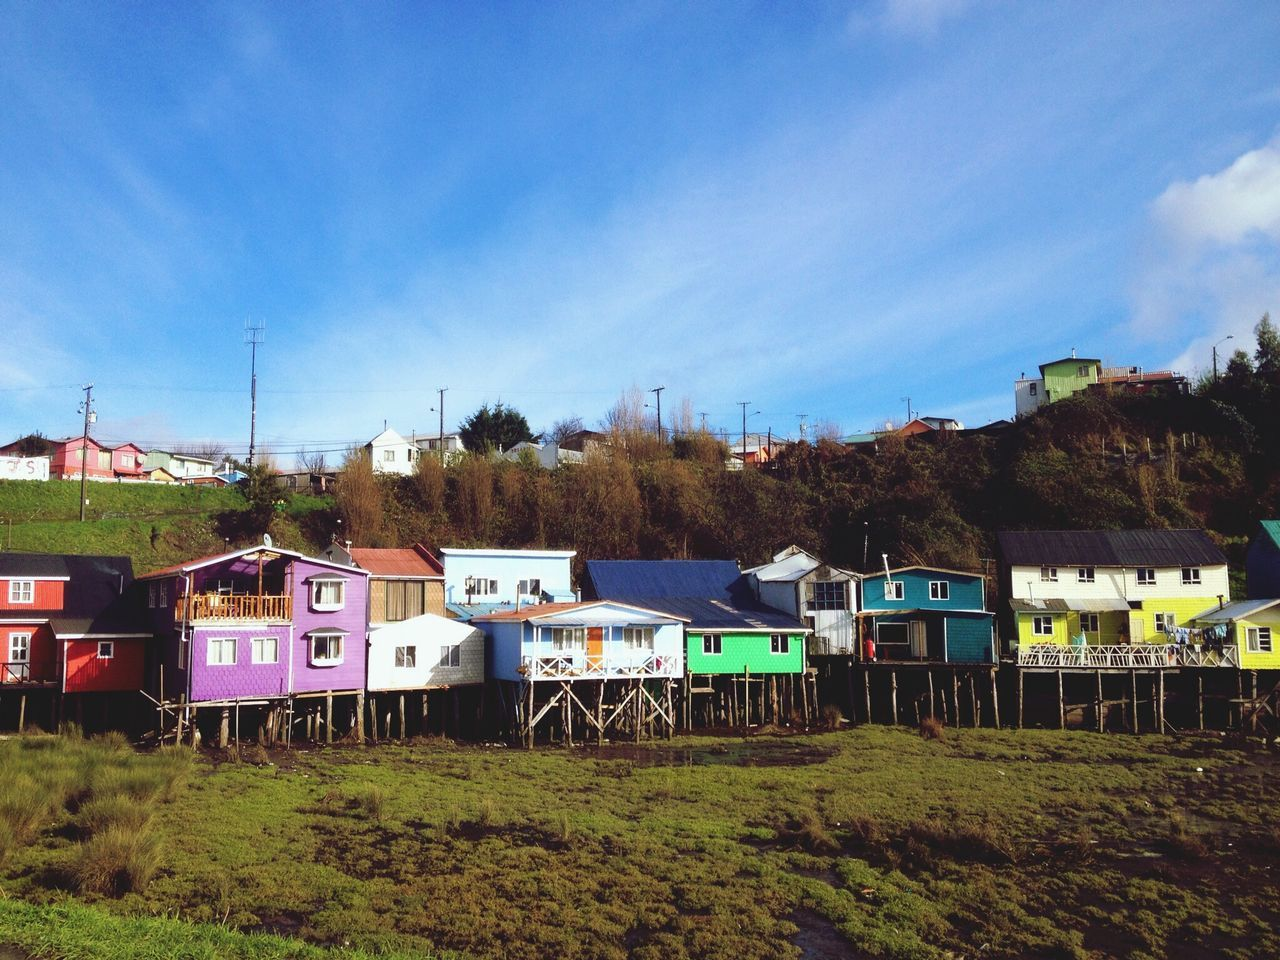 A magic place, chiloe. When the night comes, the water comes and rize up. All those sticks are under the water in the night Check This Out Nature Art Taking Photosaking Photos aking Photos